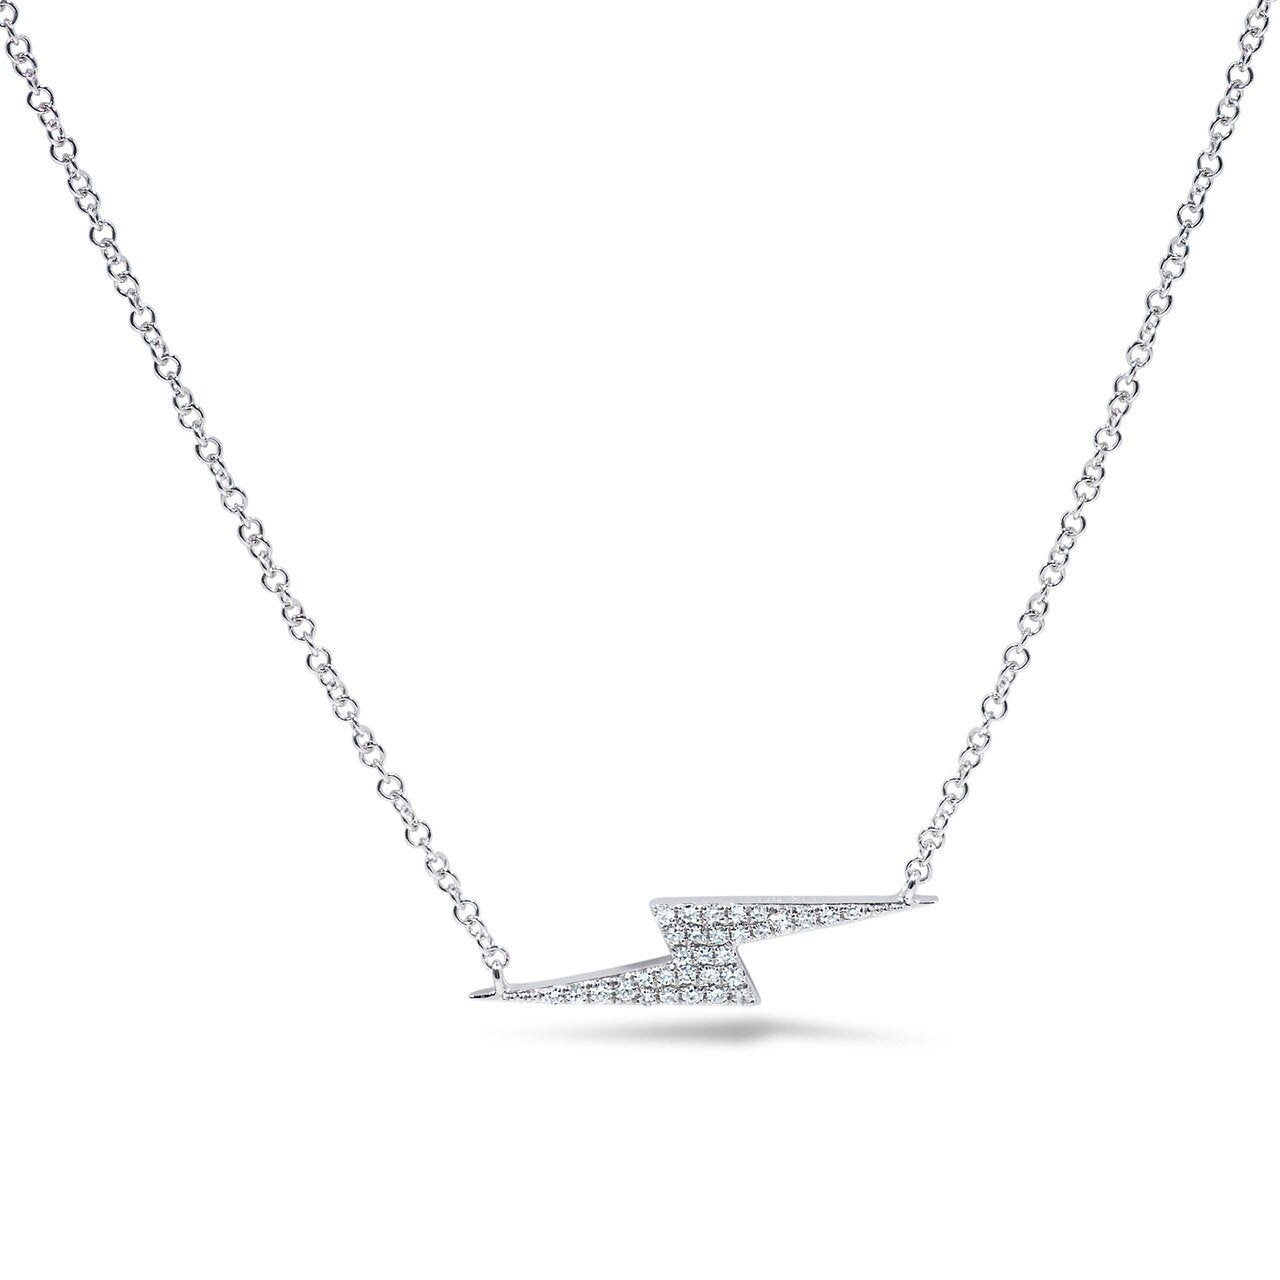 White Gold and Diamond Lightening Bolt Pendant